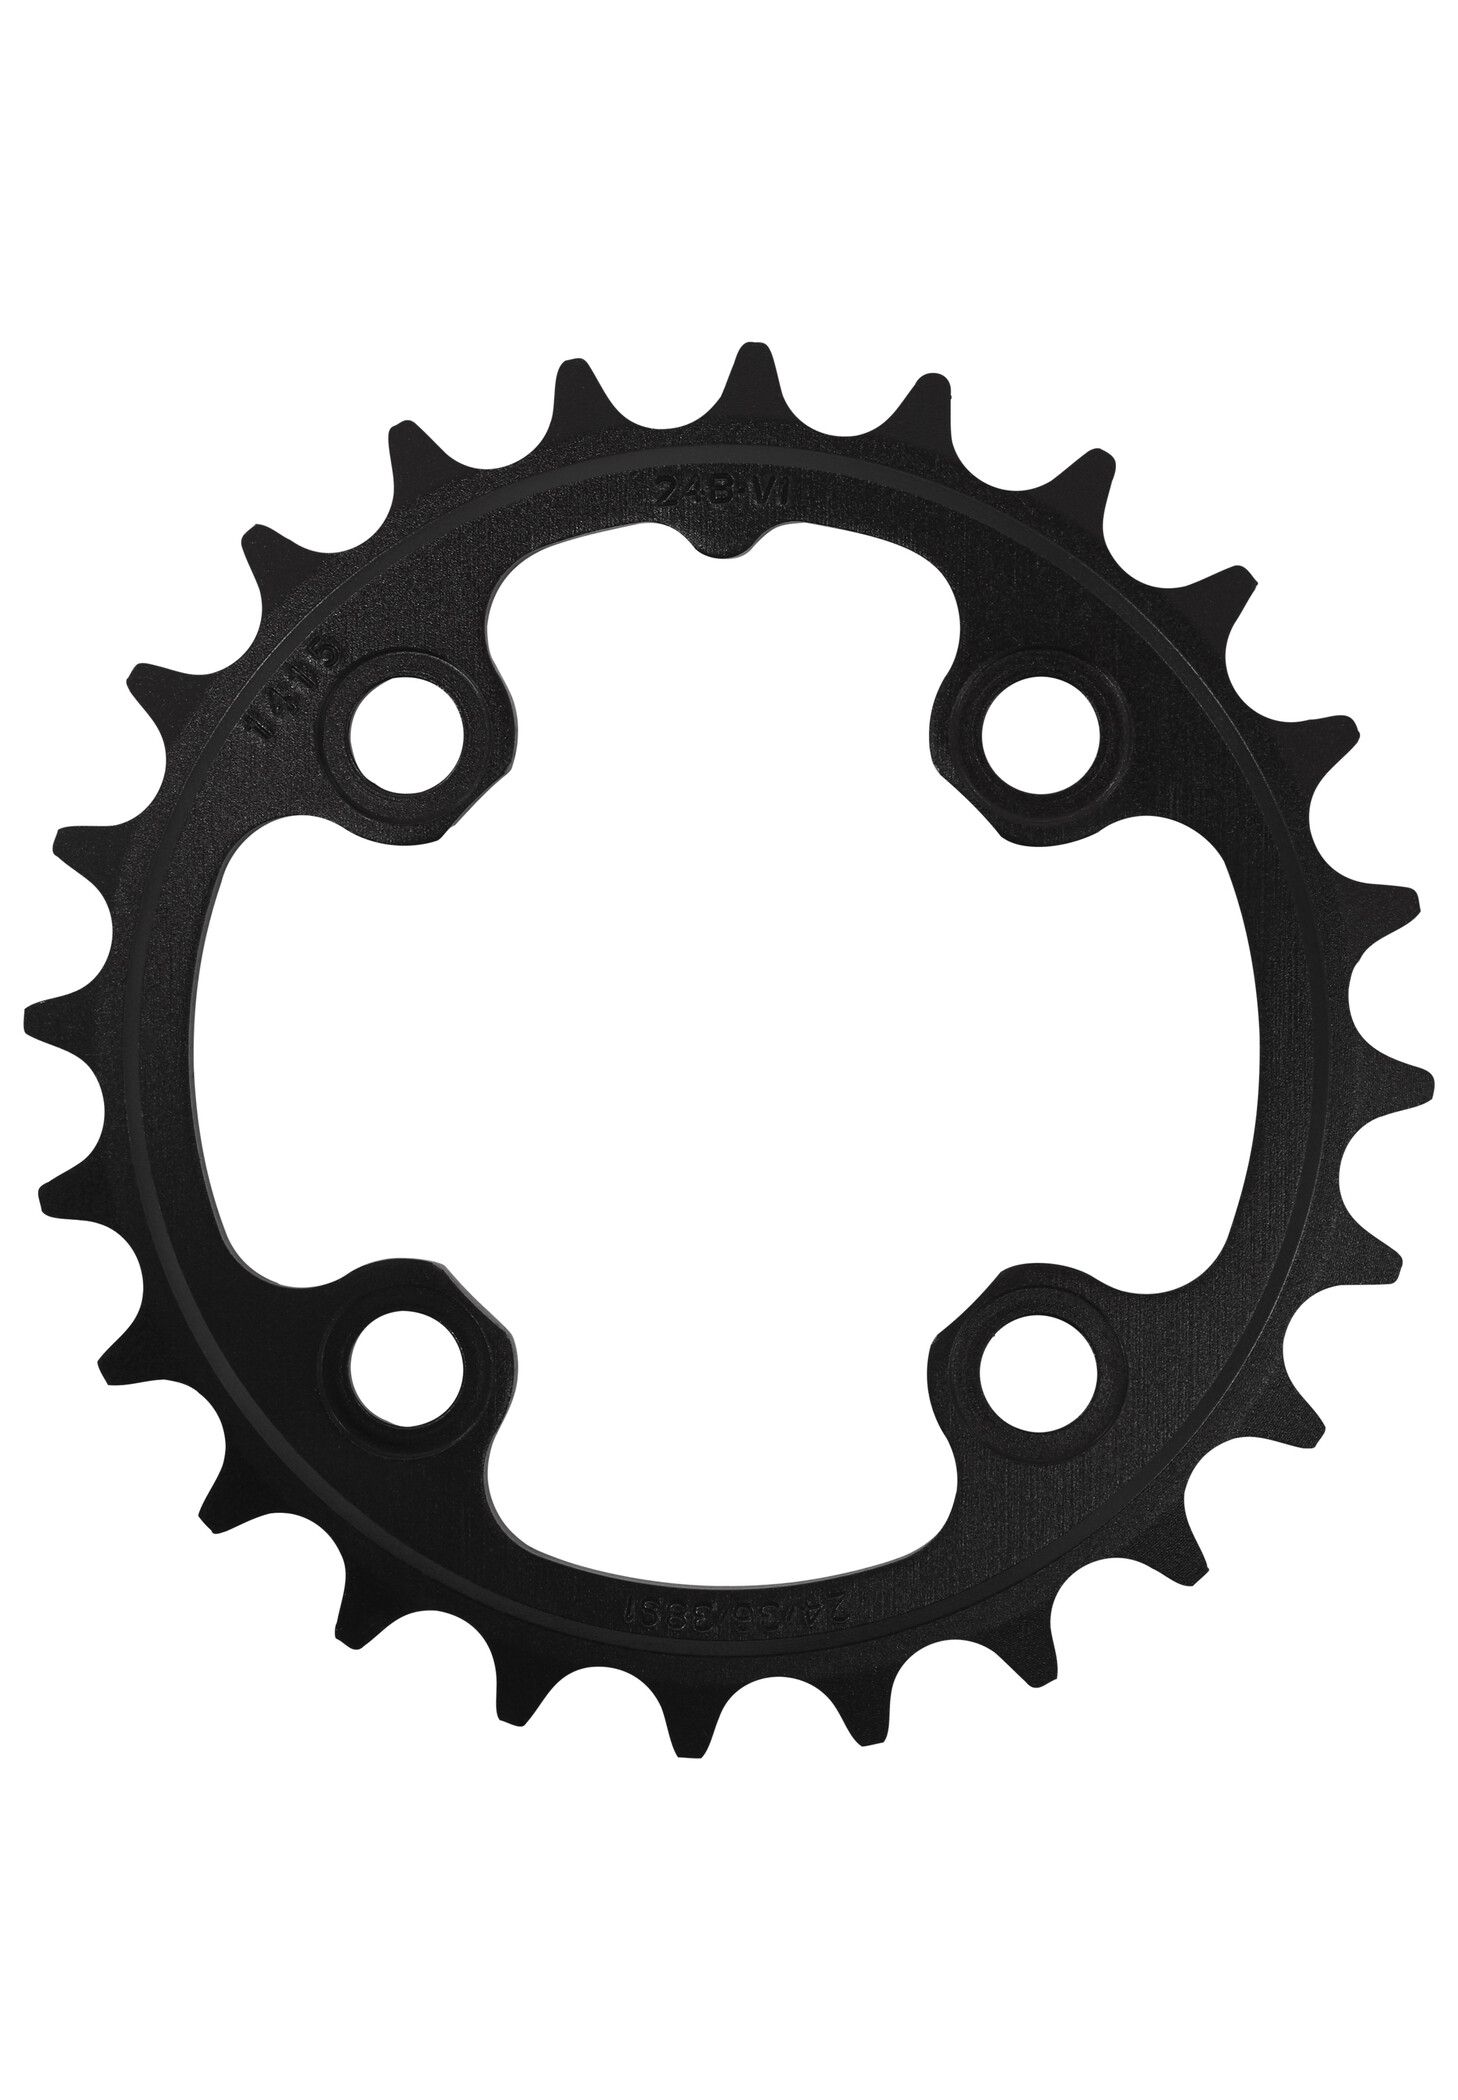 Truvativ MTB Klinge 64 mm alumiium 9/10-speed, matte black (2019) | chainrings_component